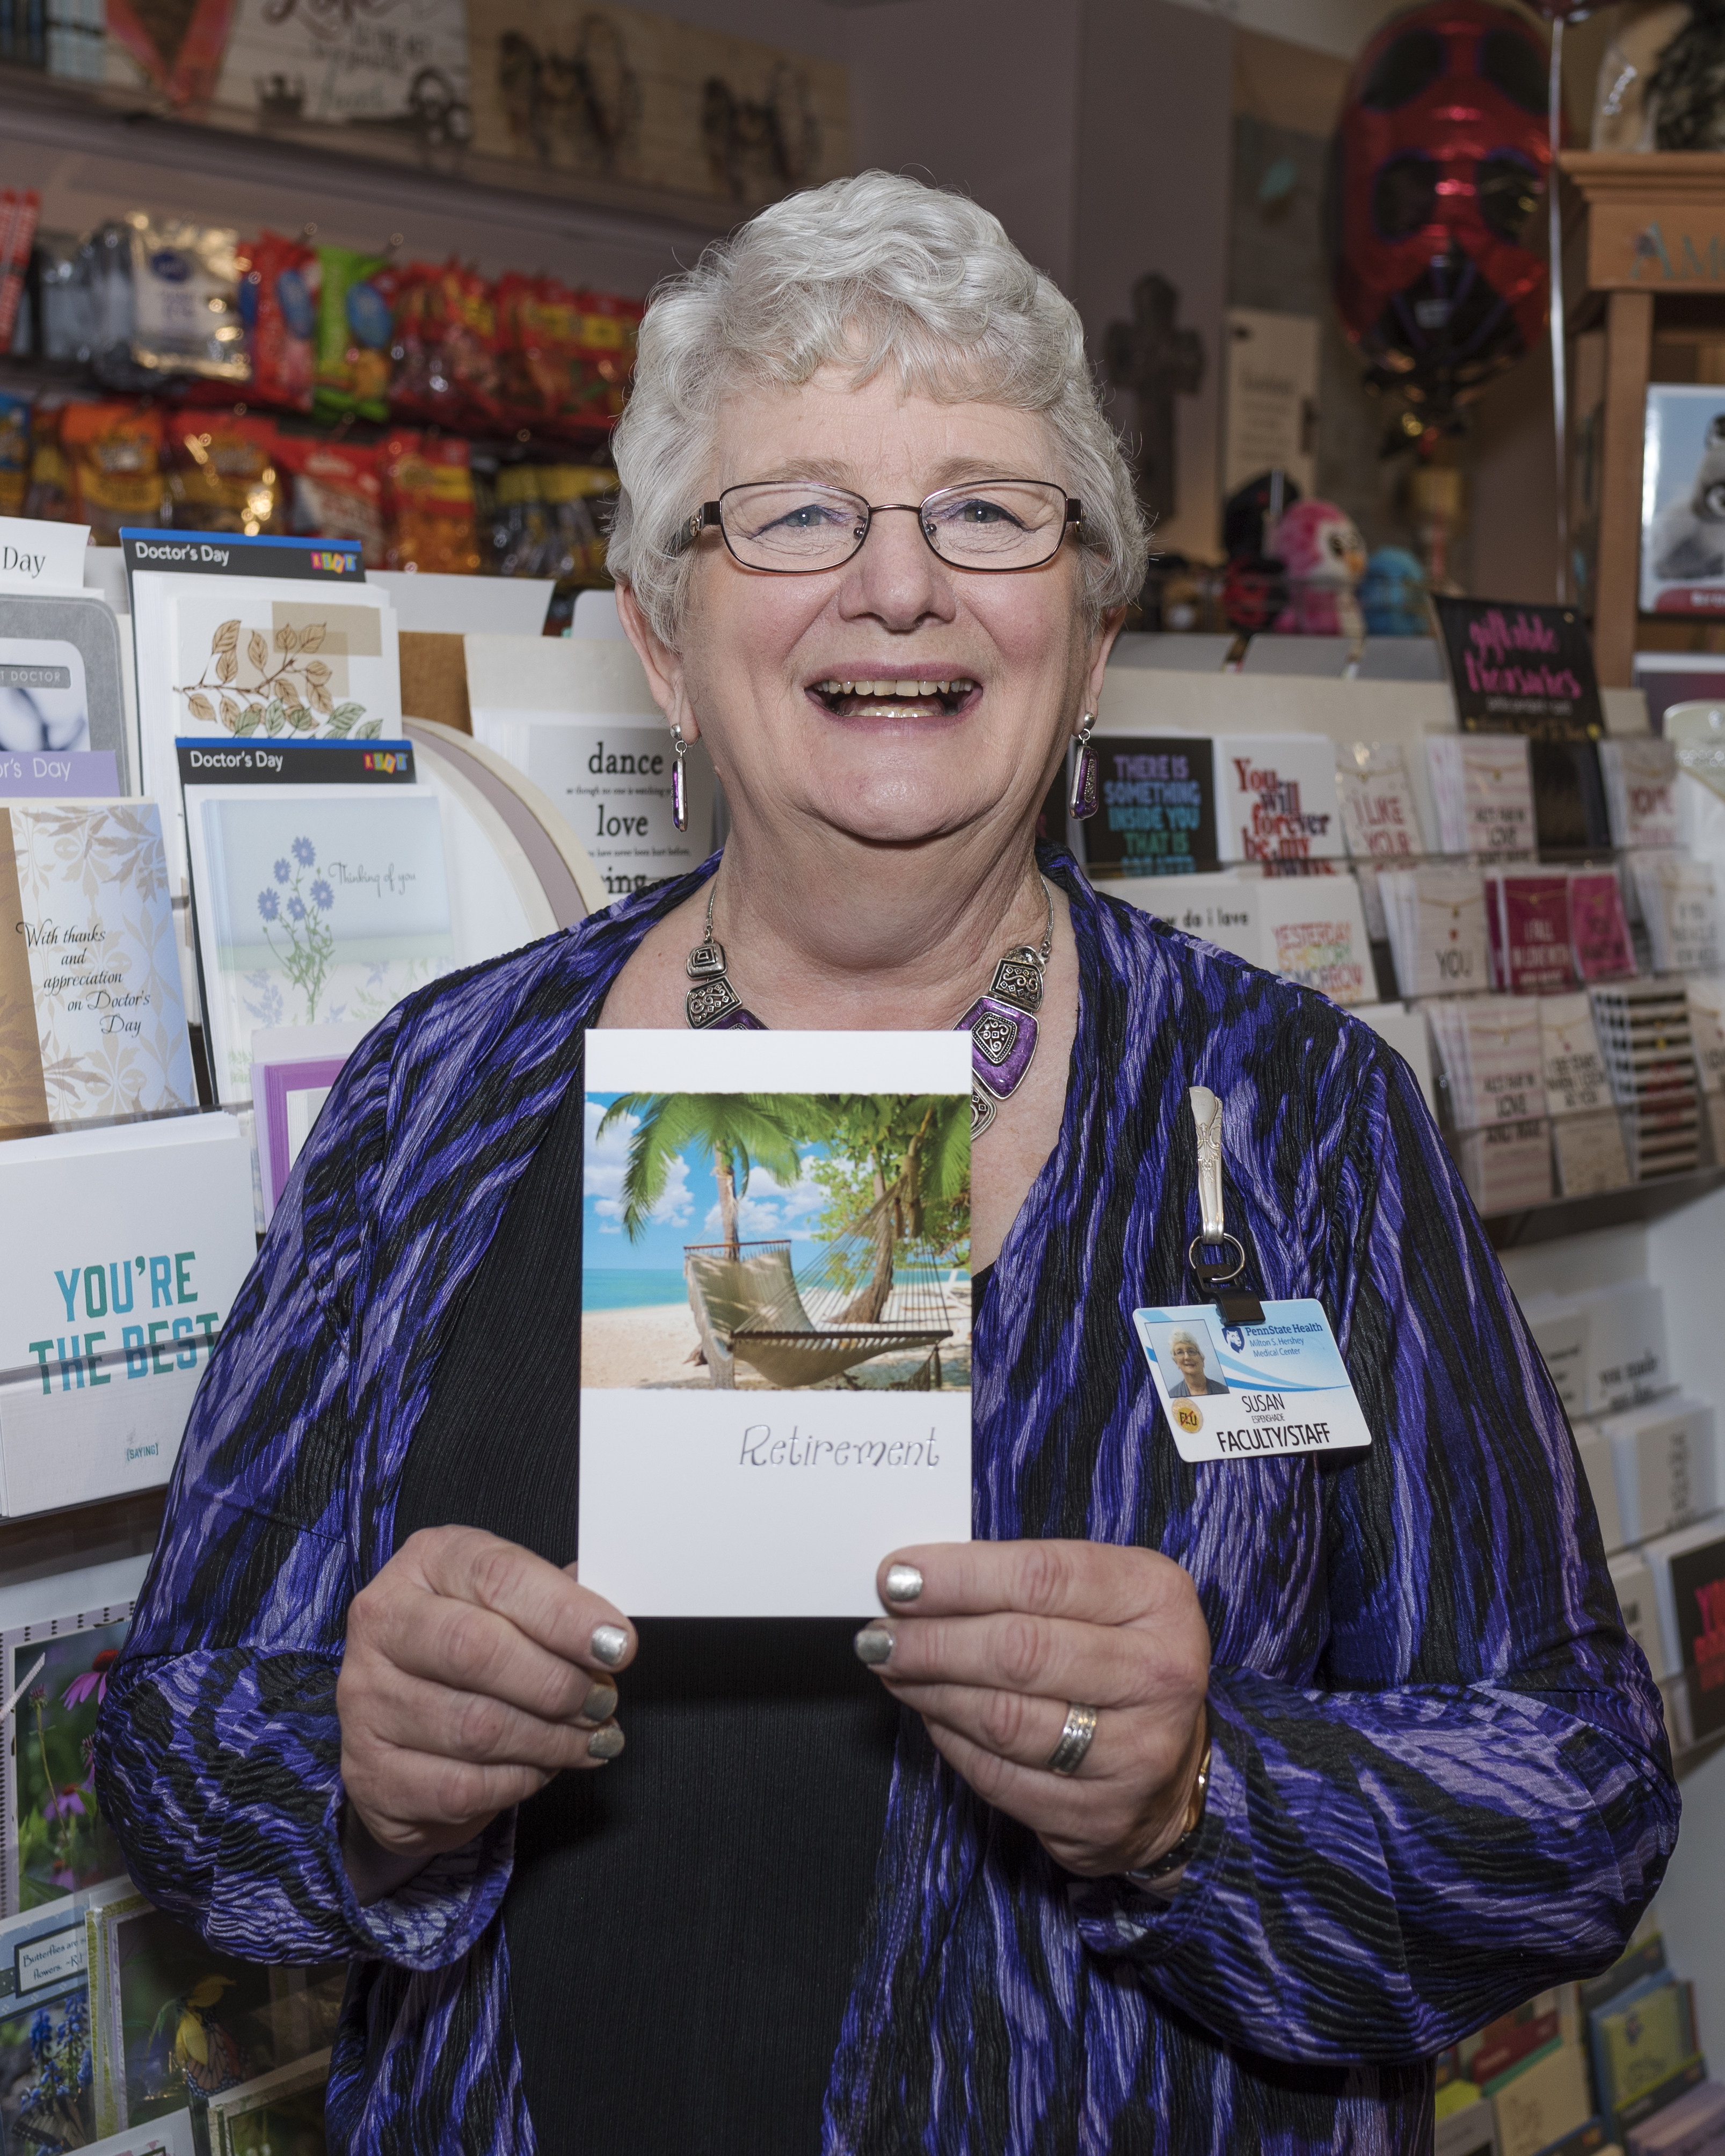 A woman holds a retirement card in the card section of a gift shop. She is smiling. She is wearing glasses.